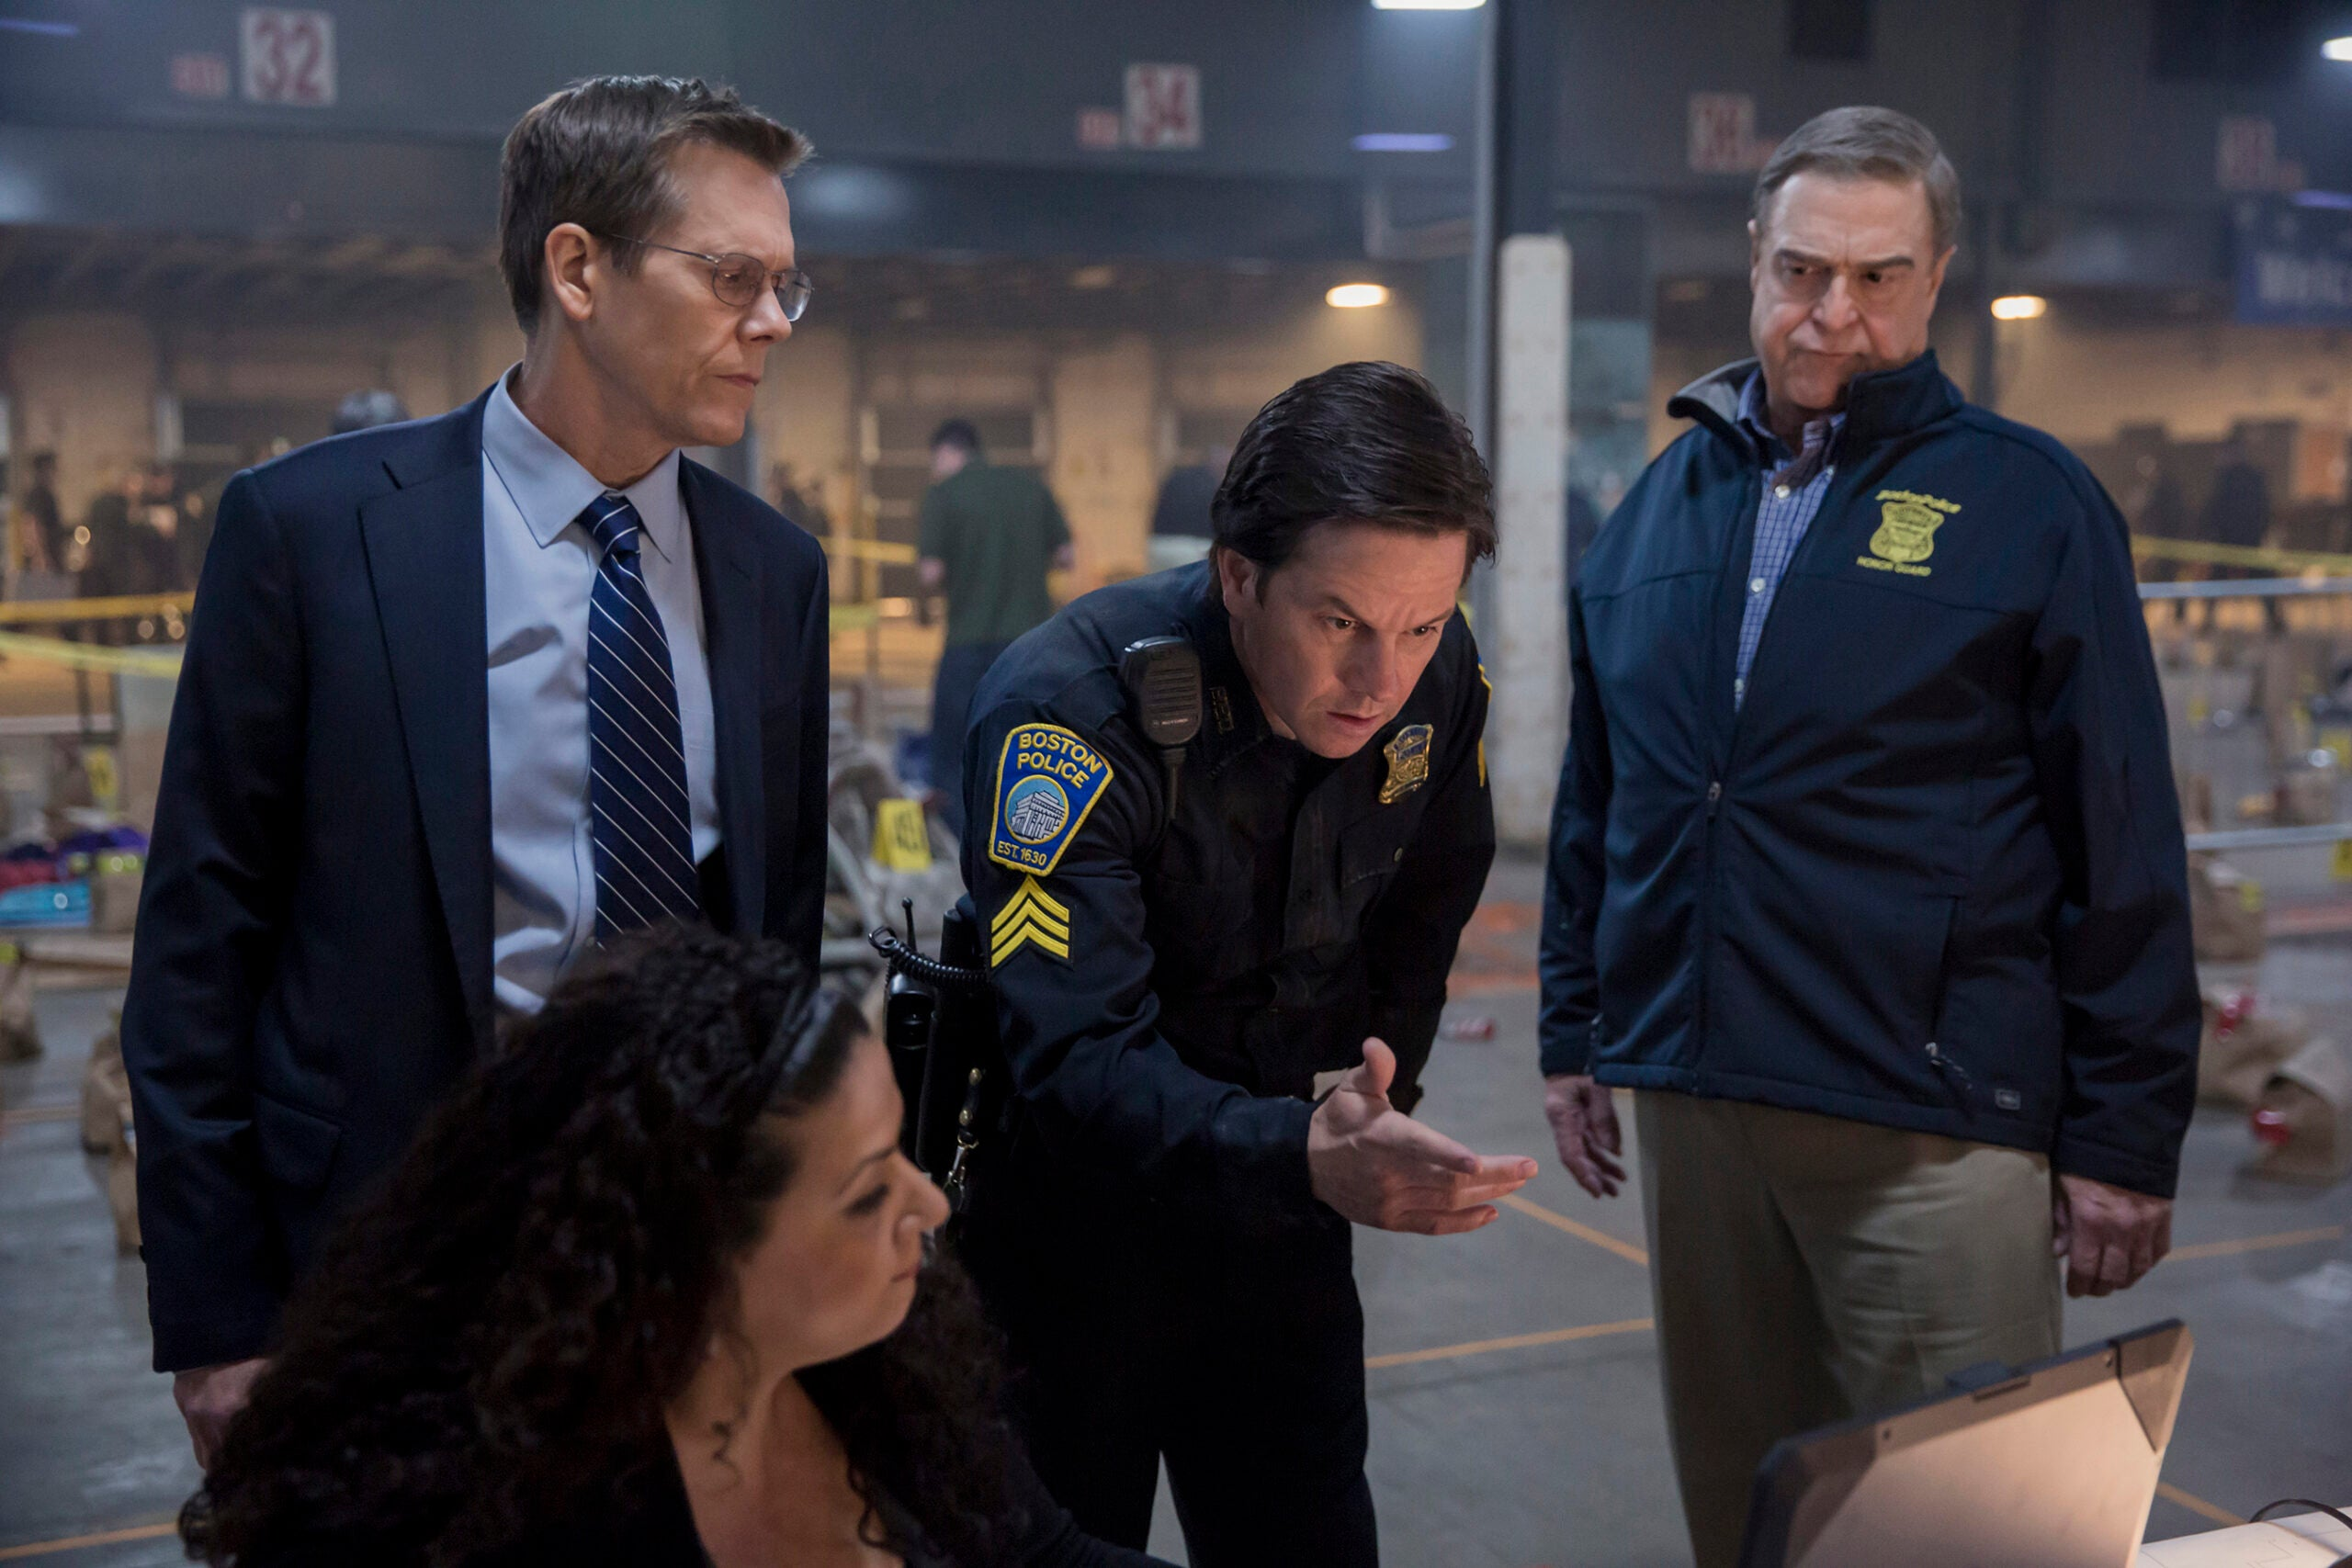 (Standing, left to right) Kevin Bacon, Mark Wahlberg and John Goodman in the 2016 film PATRIOTS DAY, directed by Peter Berg.